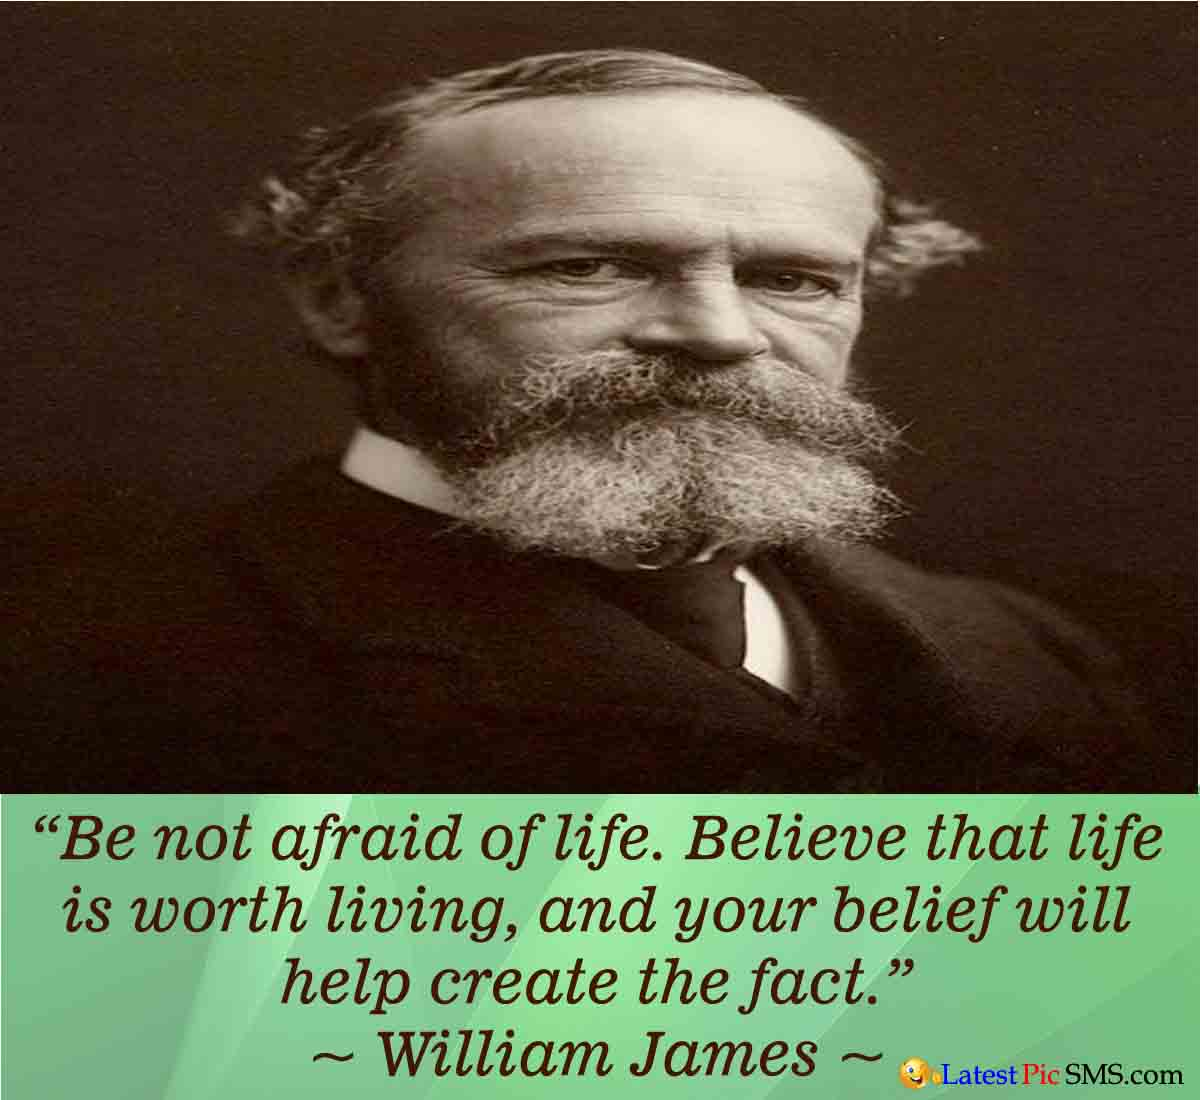 William James Life Thought